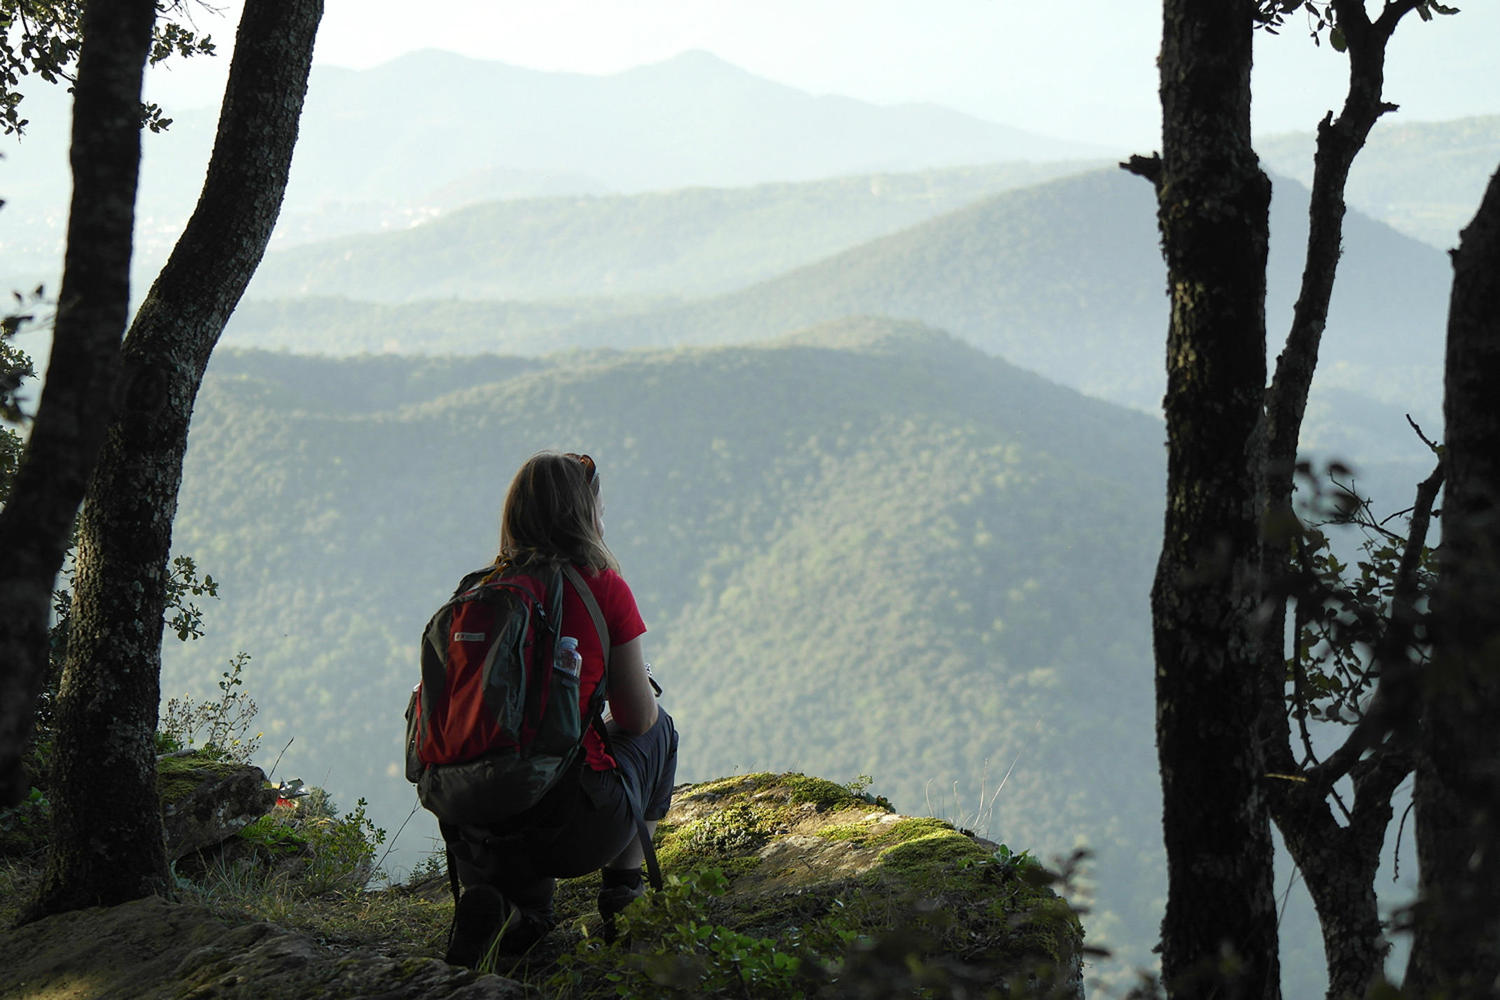 Overlooking the volcanoes of Garrotxa